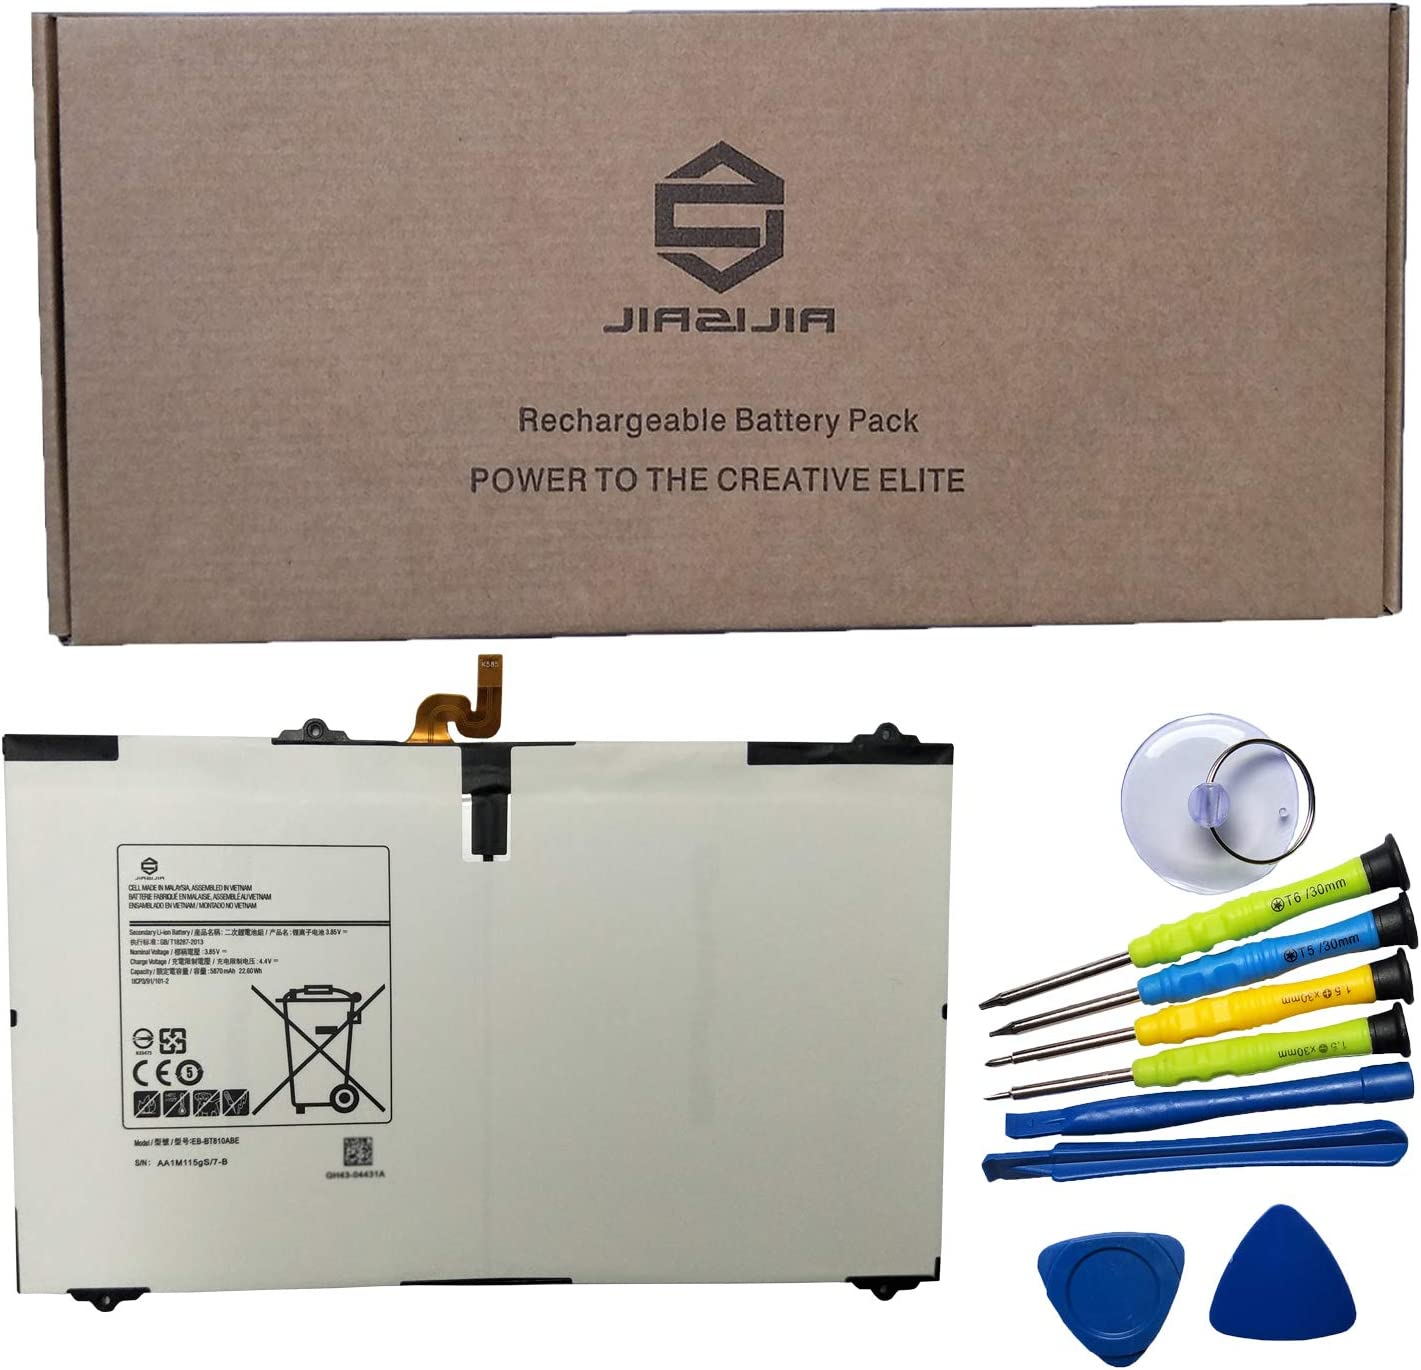 JIAZIJIA EB-BT810ABE Laptop Tablet Battery Replacement for Samsung Galaxy Tab S2 9.7 inch T817V T817 T815C T815 T813 T810 SM-T817W SM-T817T Series EB-BT810ABA White with Tools 3.85V 22.6Wh 5870mAh